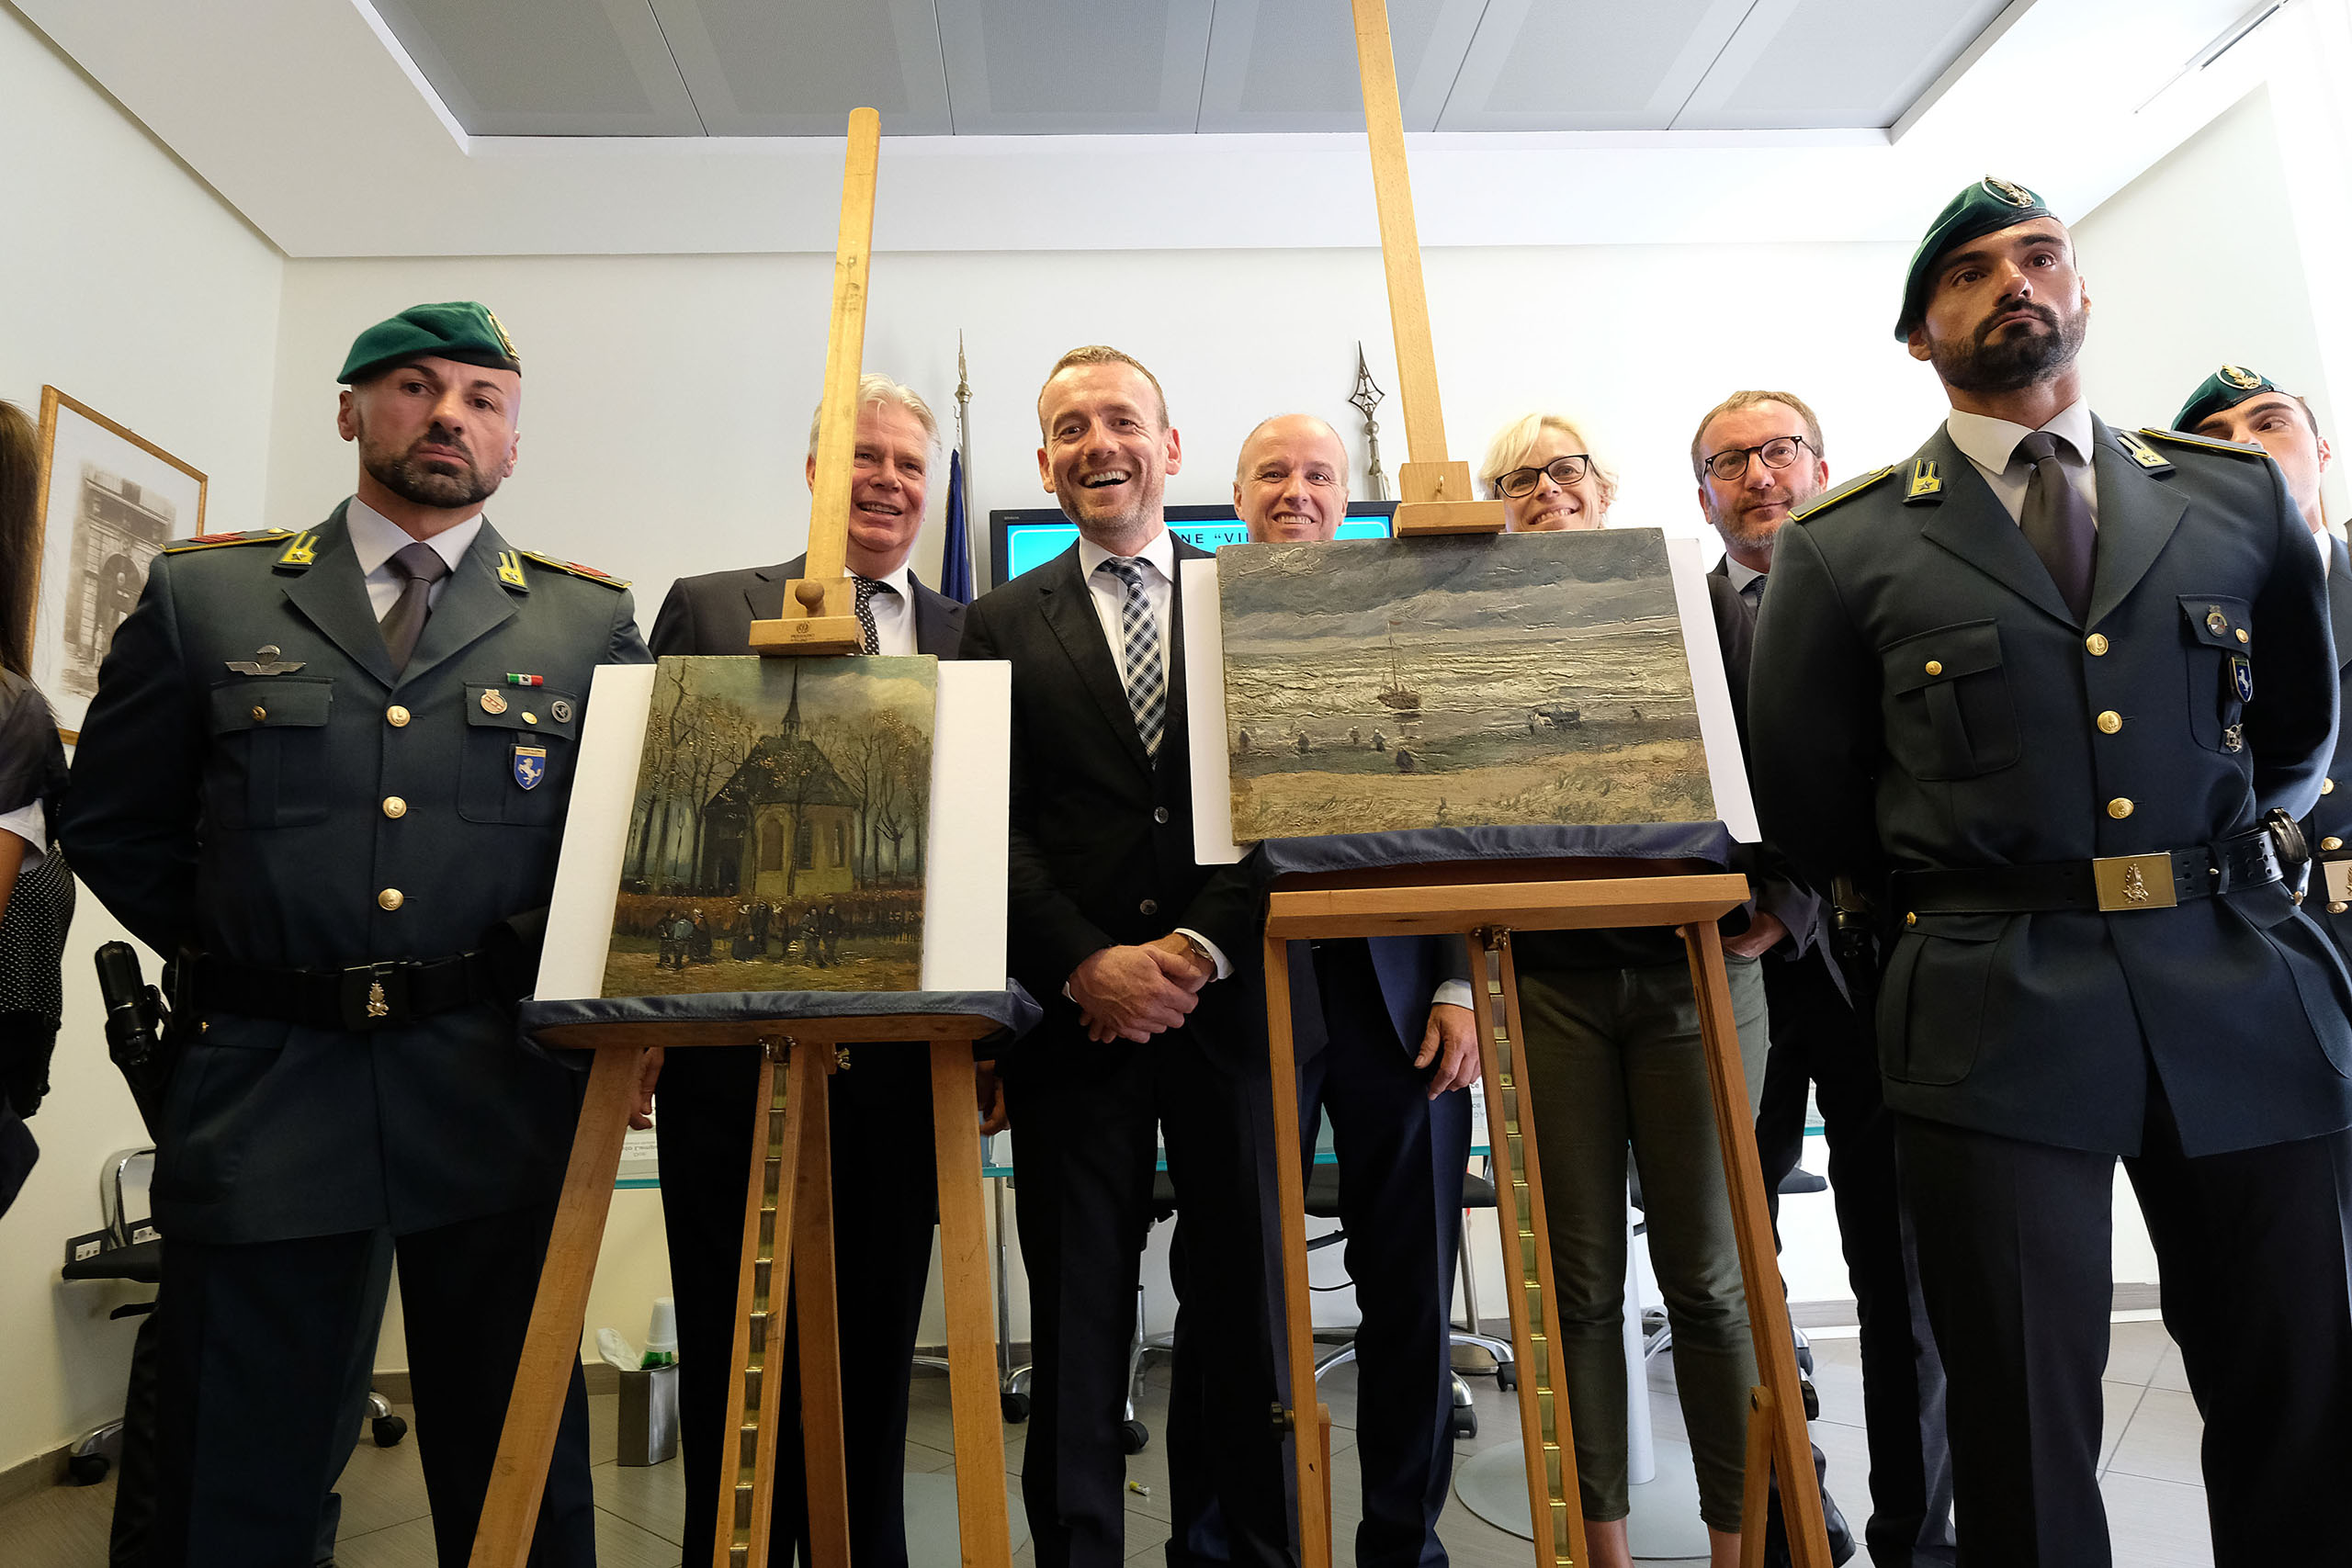 Axel Ruger, Director of the Van Gogh museum, poses next to  Congregation Leaving the Reformed Church in Nuenen  (L) and  The Beach At Scheveningen During A Storm  (R) by Vincent van Gogh. The two Van Gogh paintings were stolen in Amsterdam 14 years ago and recently recovered by organized crime investigators in Italy, on Sept. 30, 2016.